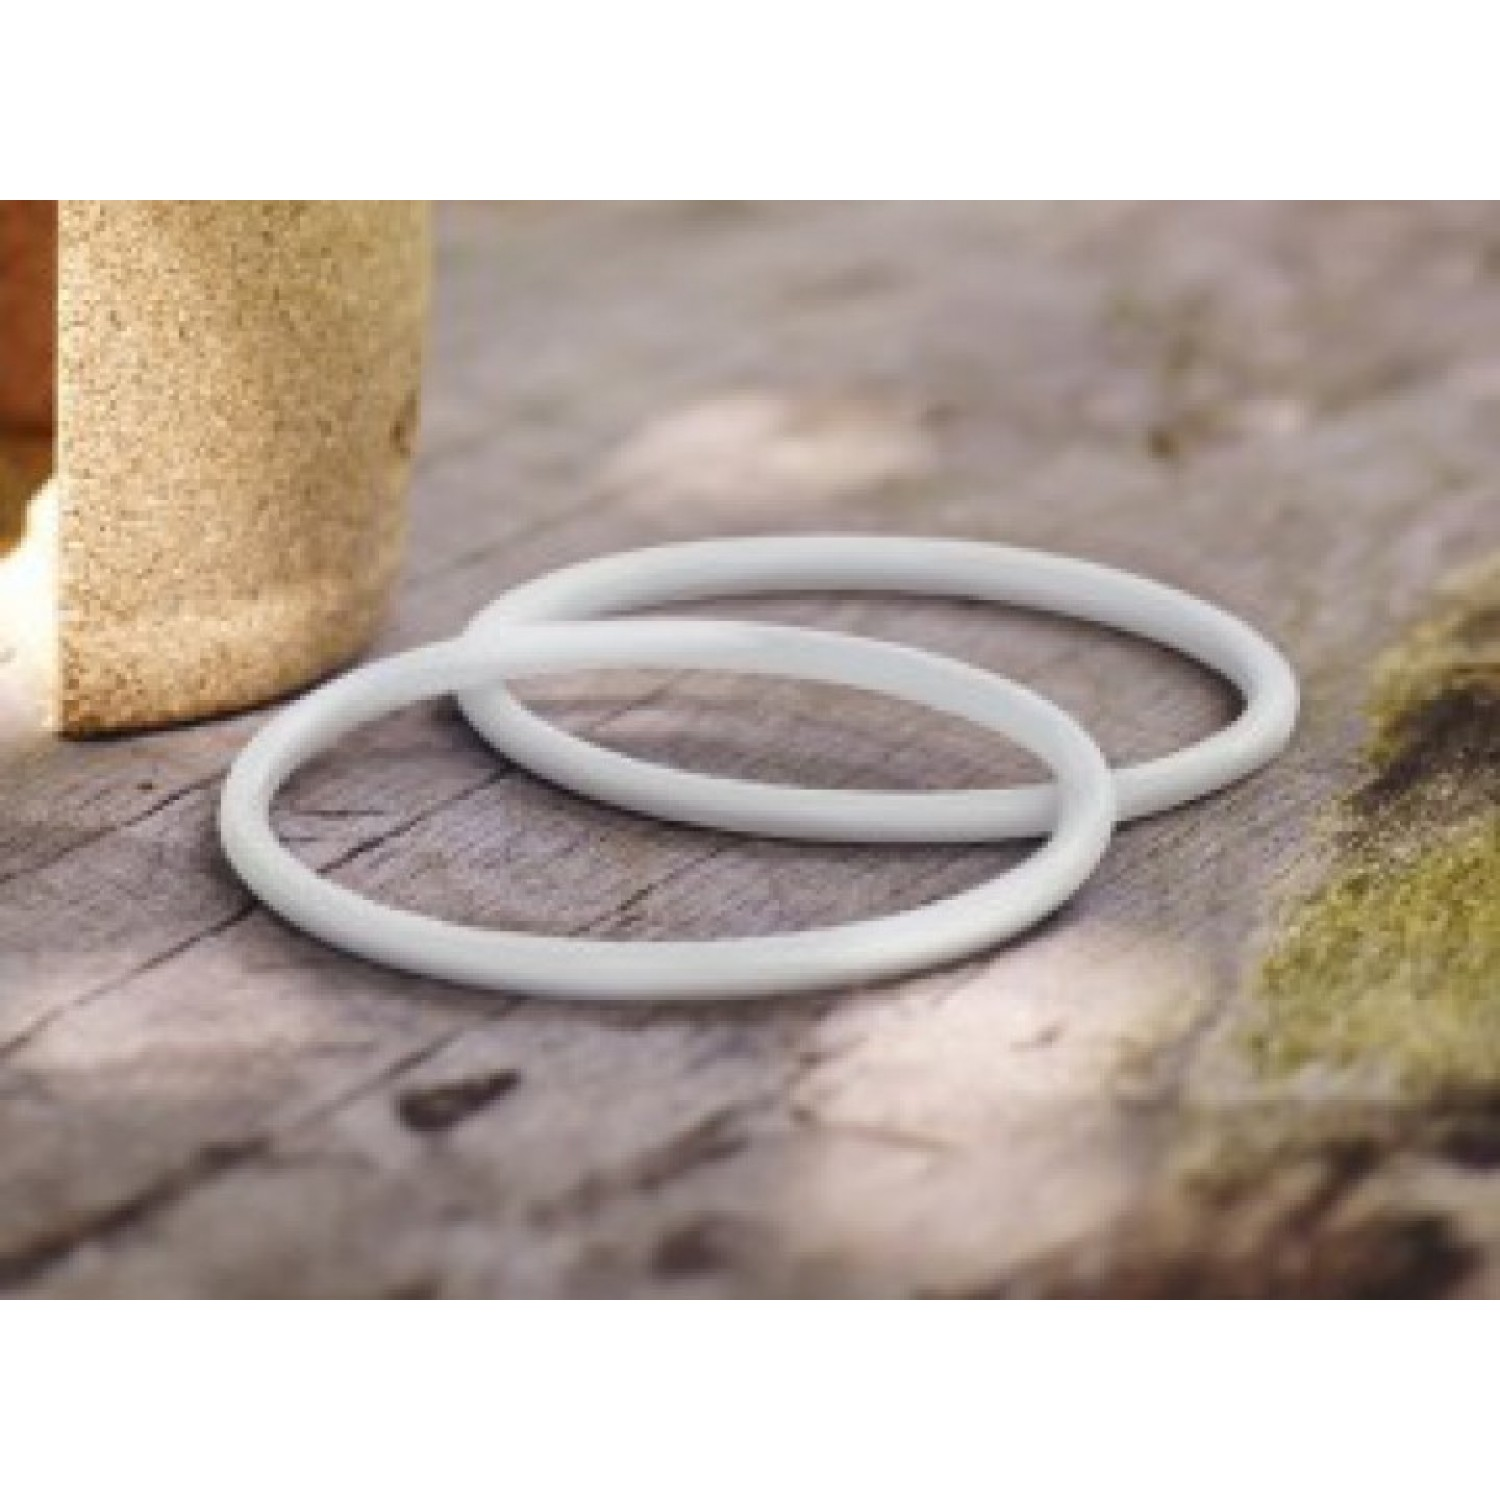 Spare rubber rings for Nature's Design Lagoena & Thank You bottle